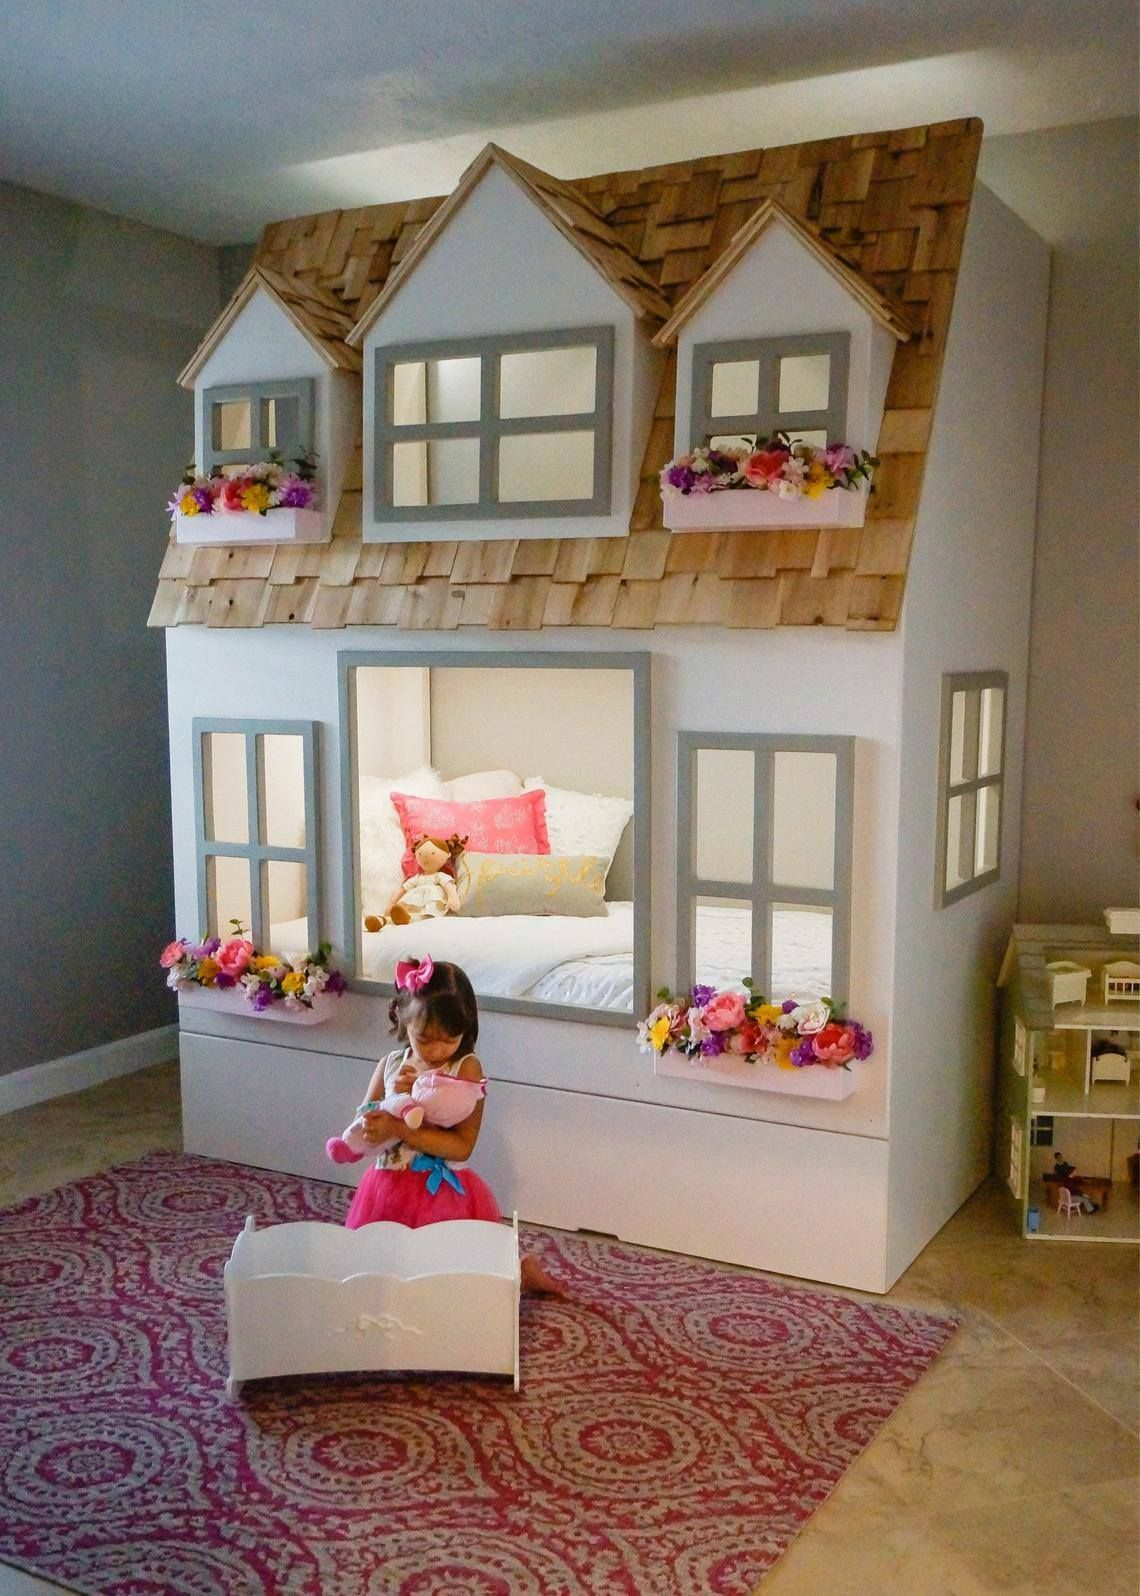 Super cute bed and playhouse combined! Love the carpet